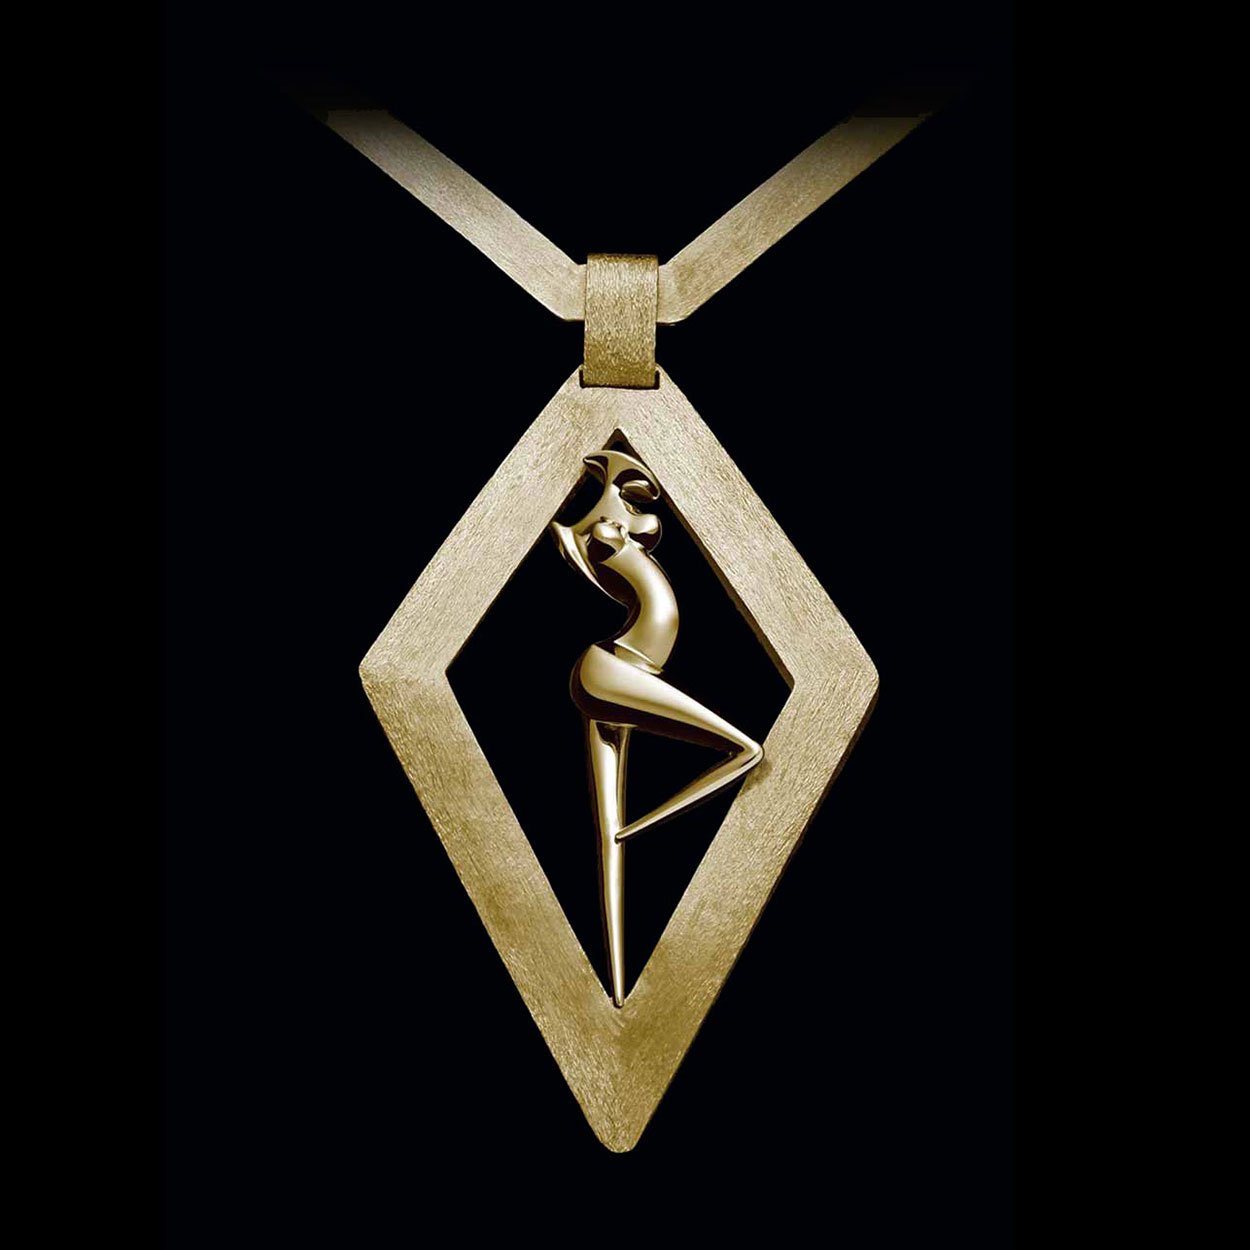 La Danseuse, Jewel Losange 18 - carat gold signed by the artist Marion Bürklé